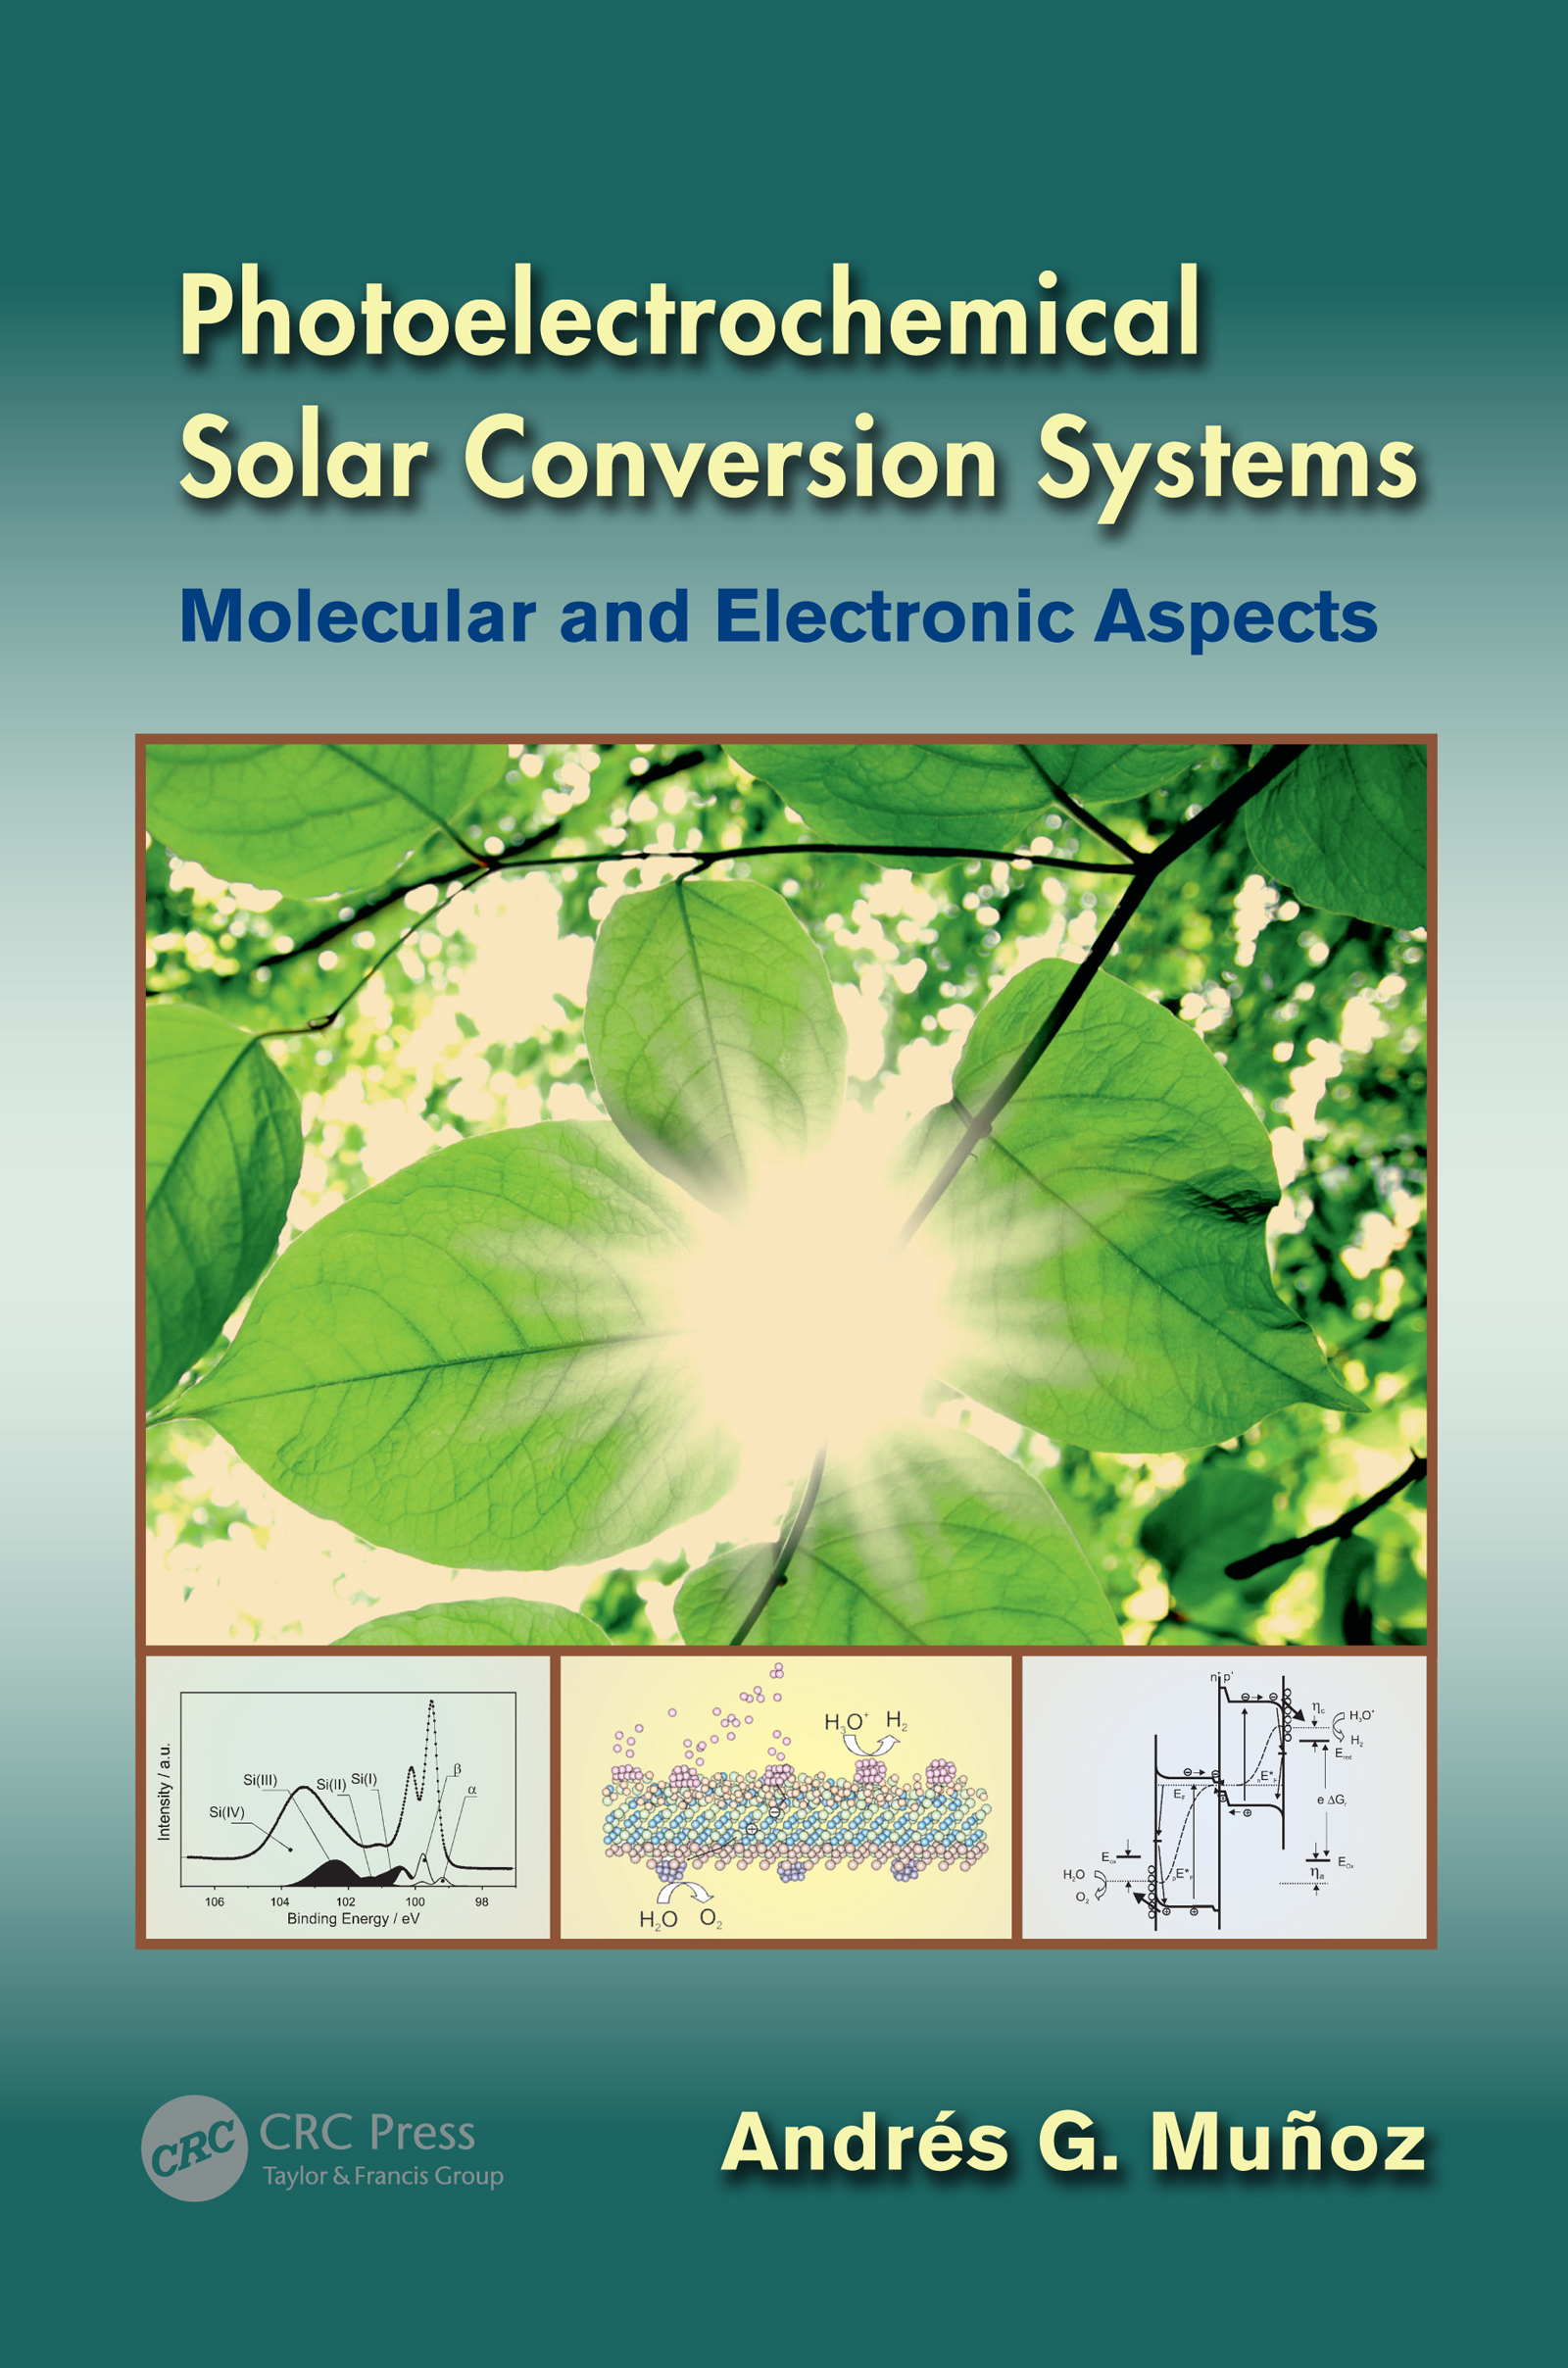 - Principles and Systems in Light-Induced Energy Conversion